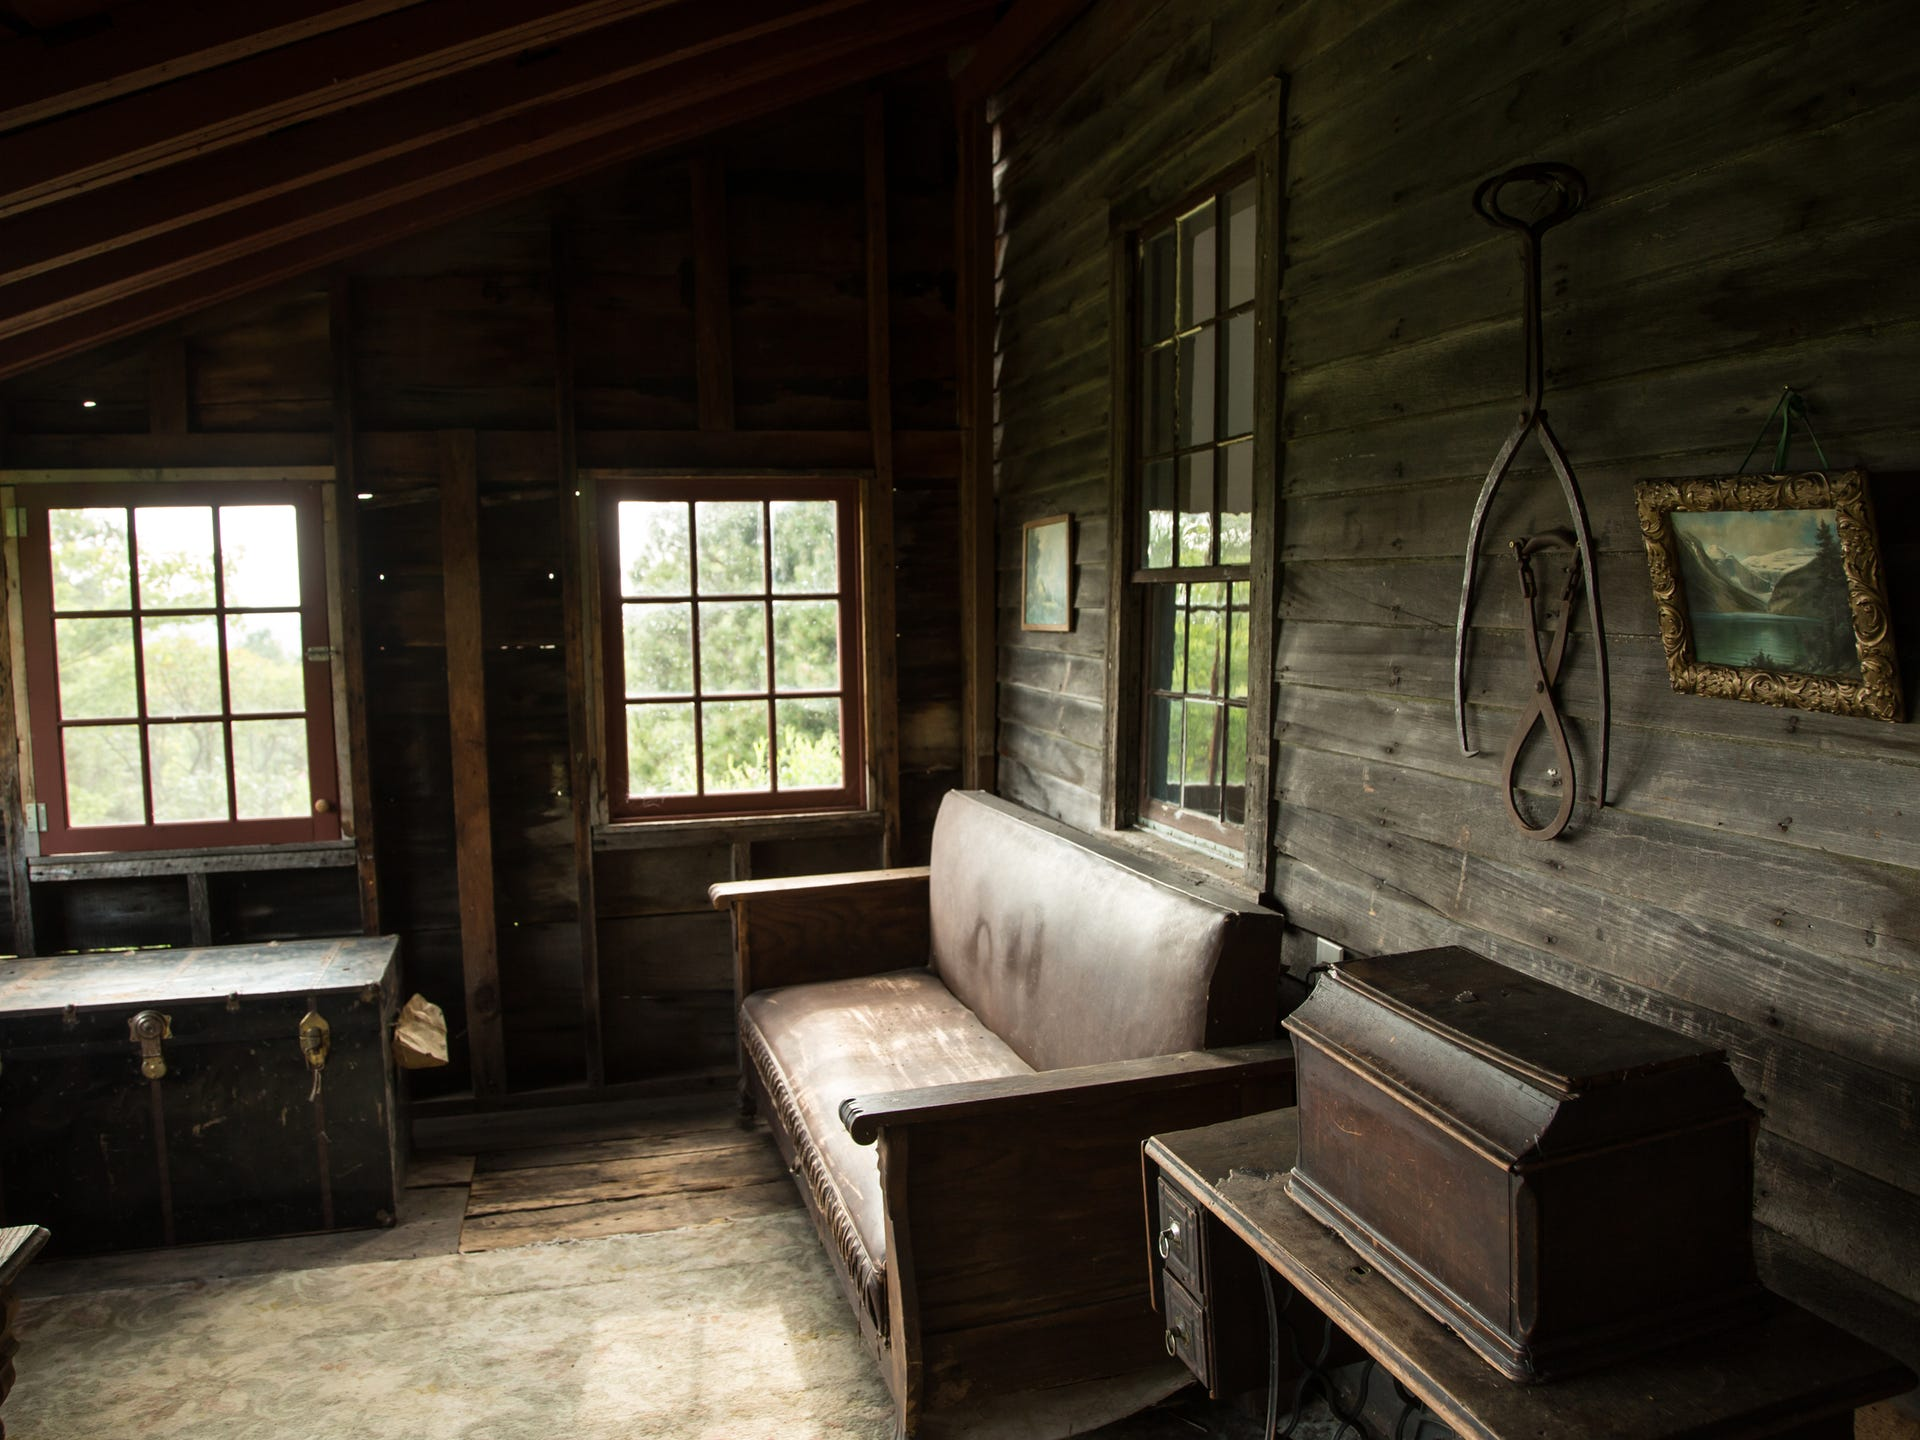 The interior of an abandoned miner's shack in the Upper